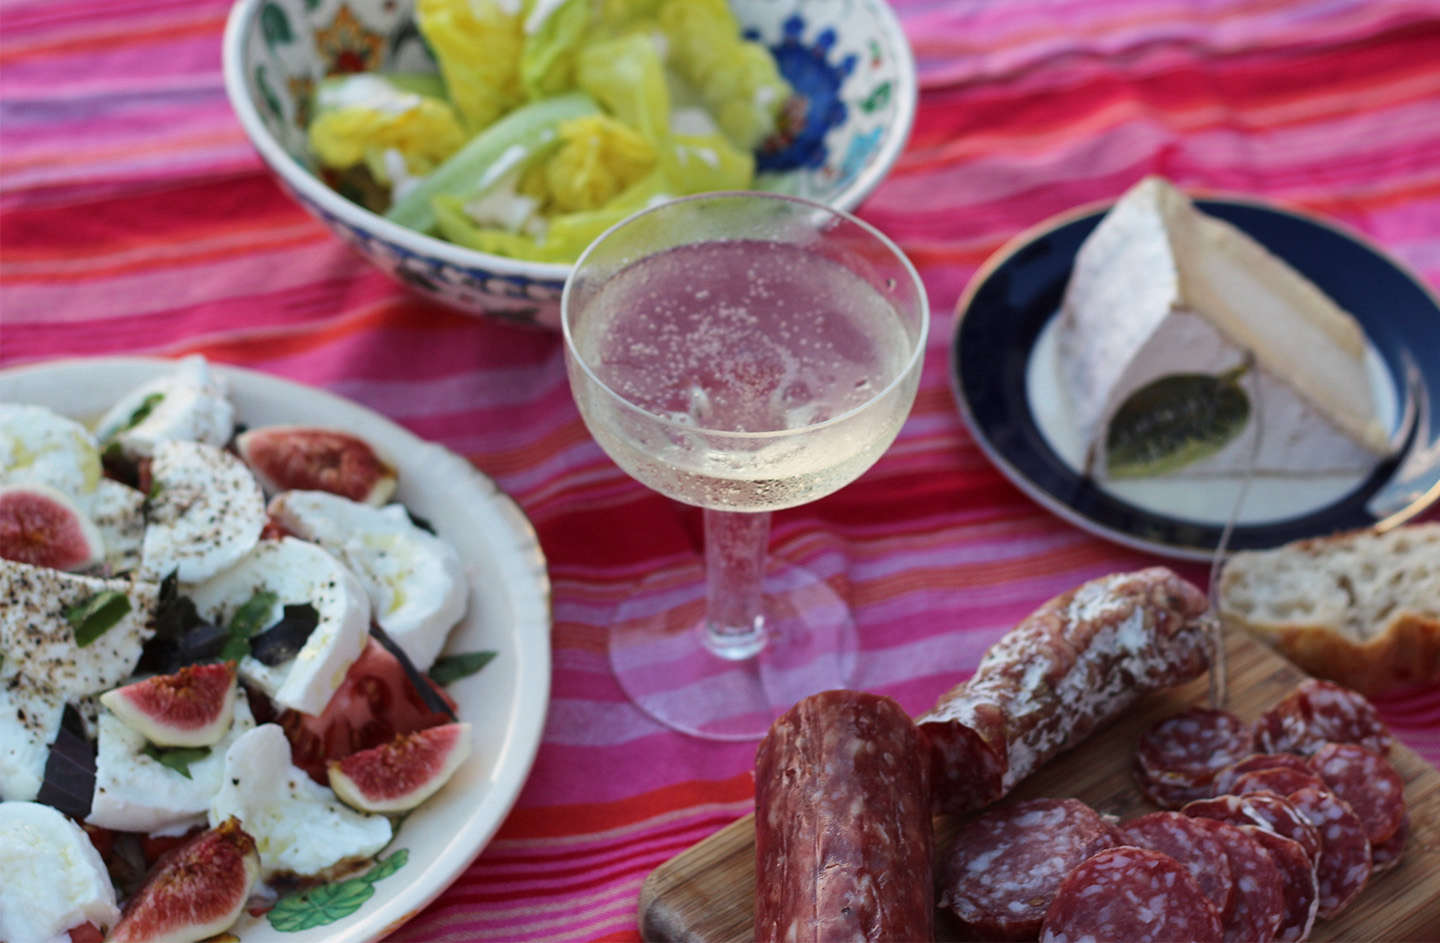 sweet season  11 favorite recipes for fresh figs